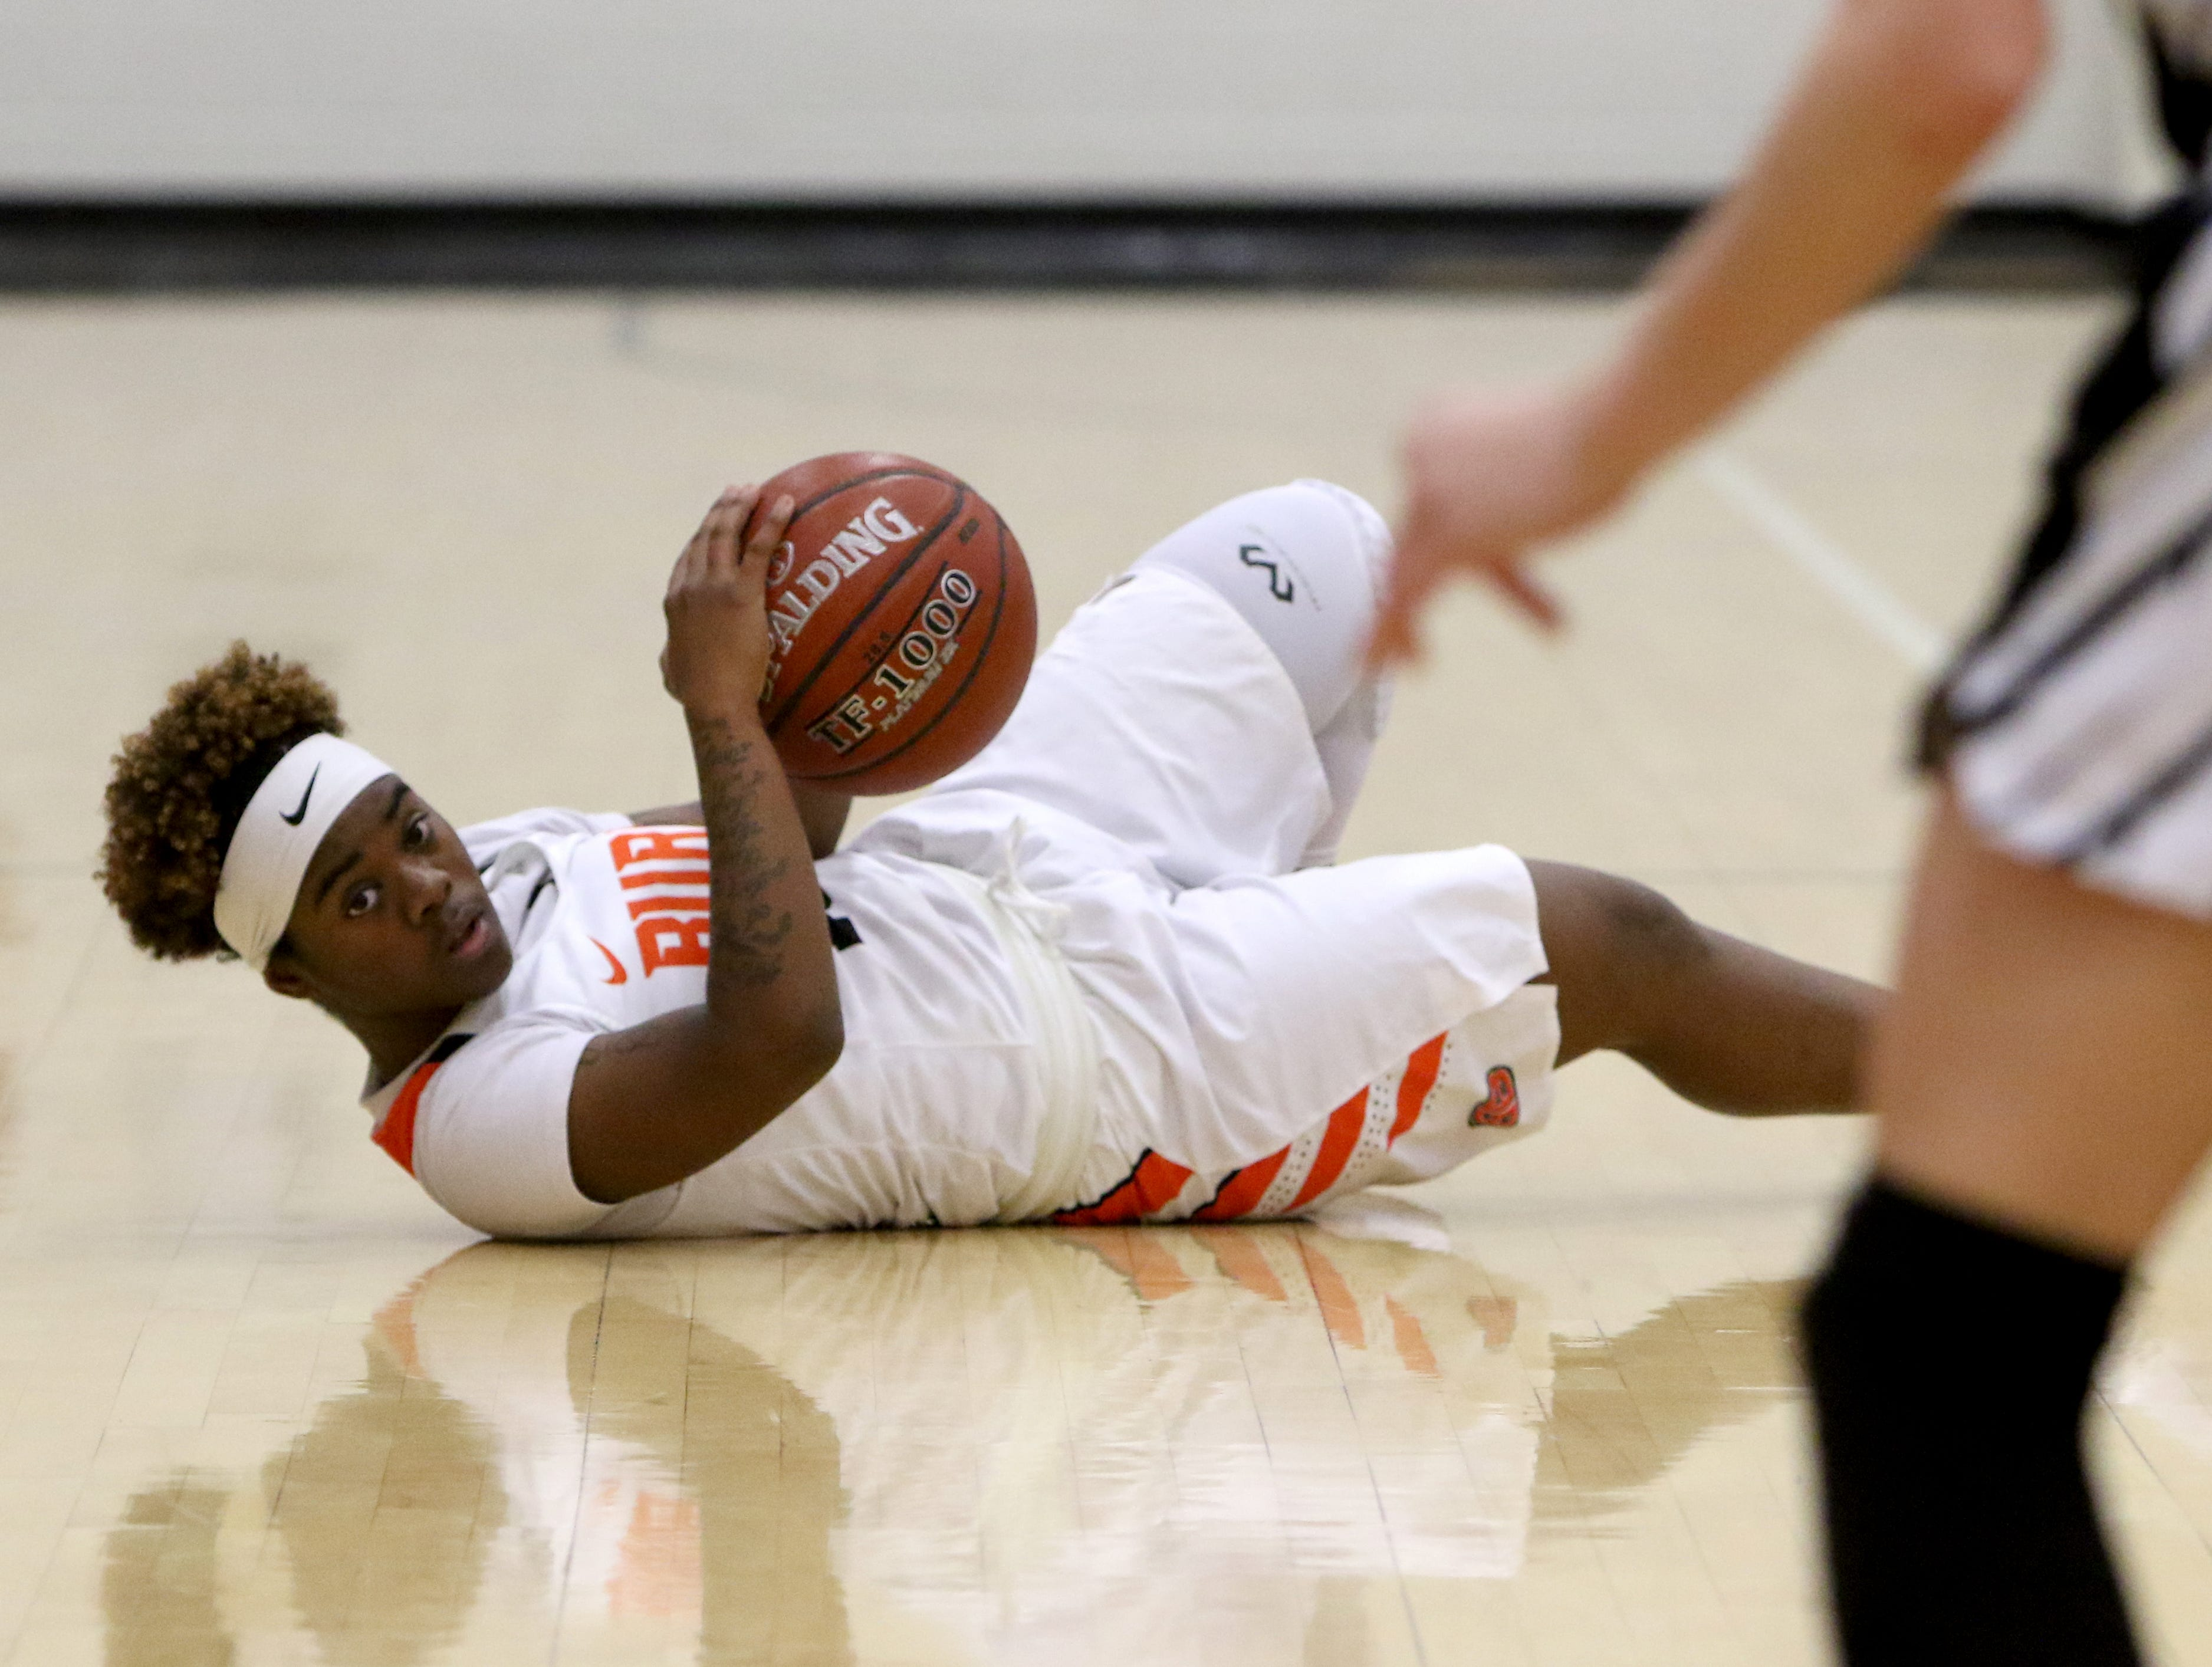 Burkburnett's Amiria Simpson looks for an open teammate after getting the loose ball in the game against Nocona Tuesday, Dec. 4, 2018, in Burkburnett.